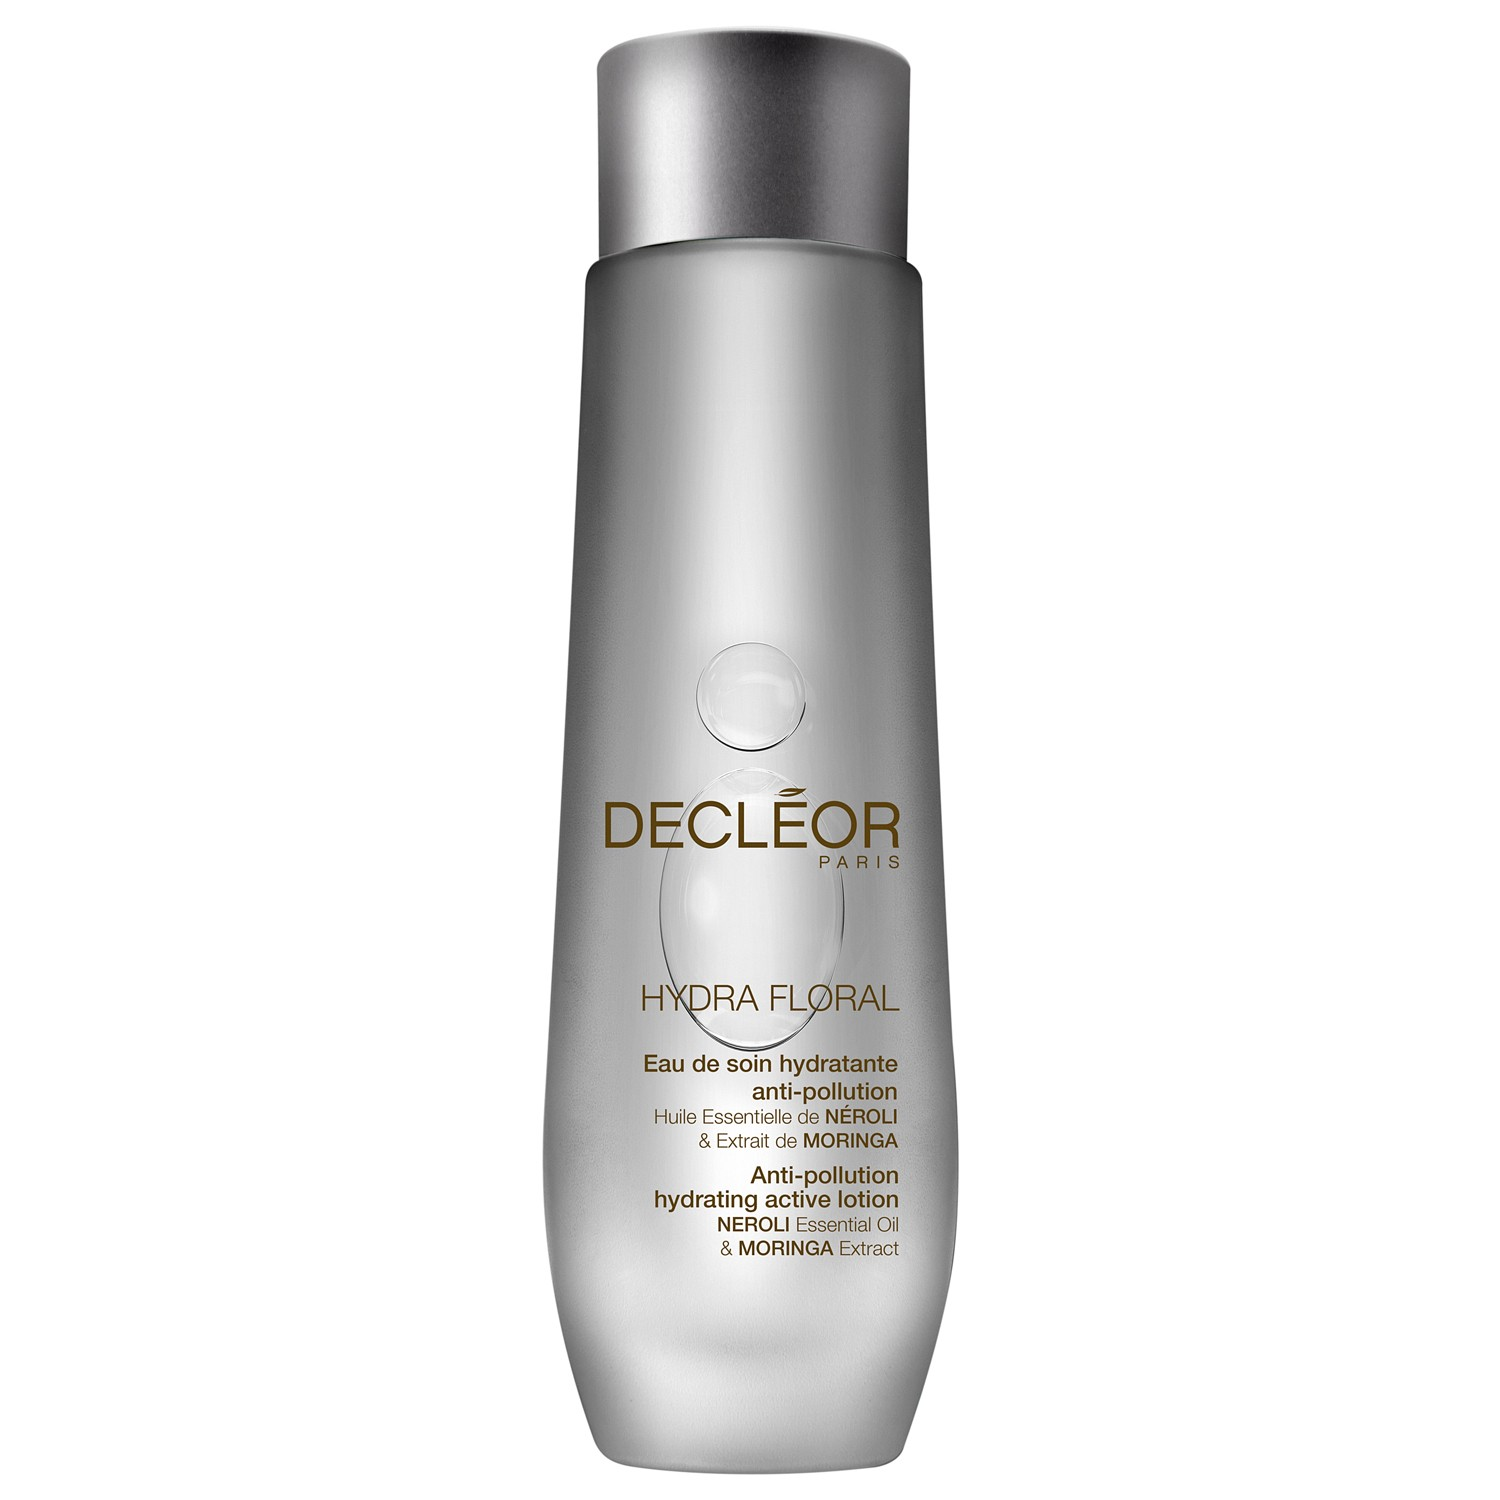 Decleor HYDRA FLORAL Anti-pollution hydrating active lotion (3.3 fl oz / 100 ml)